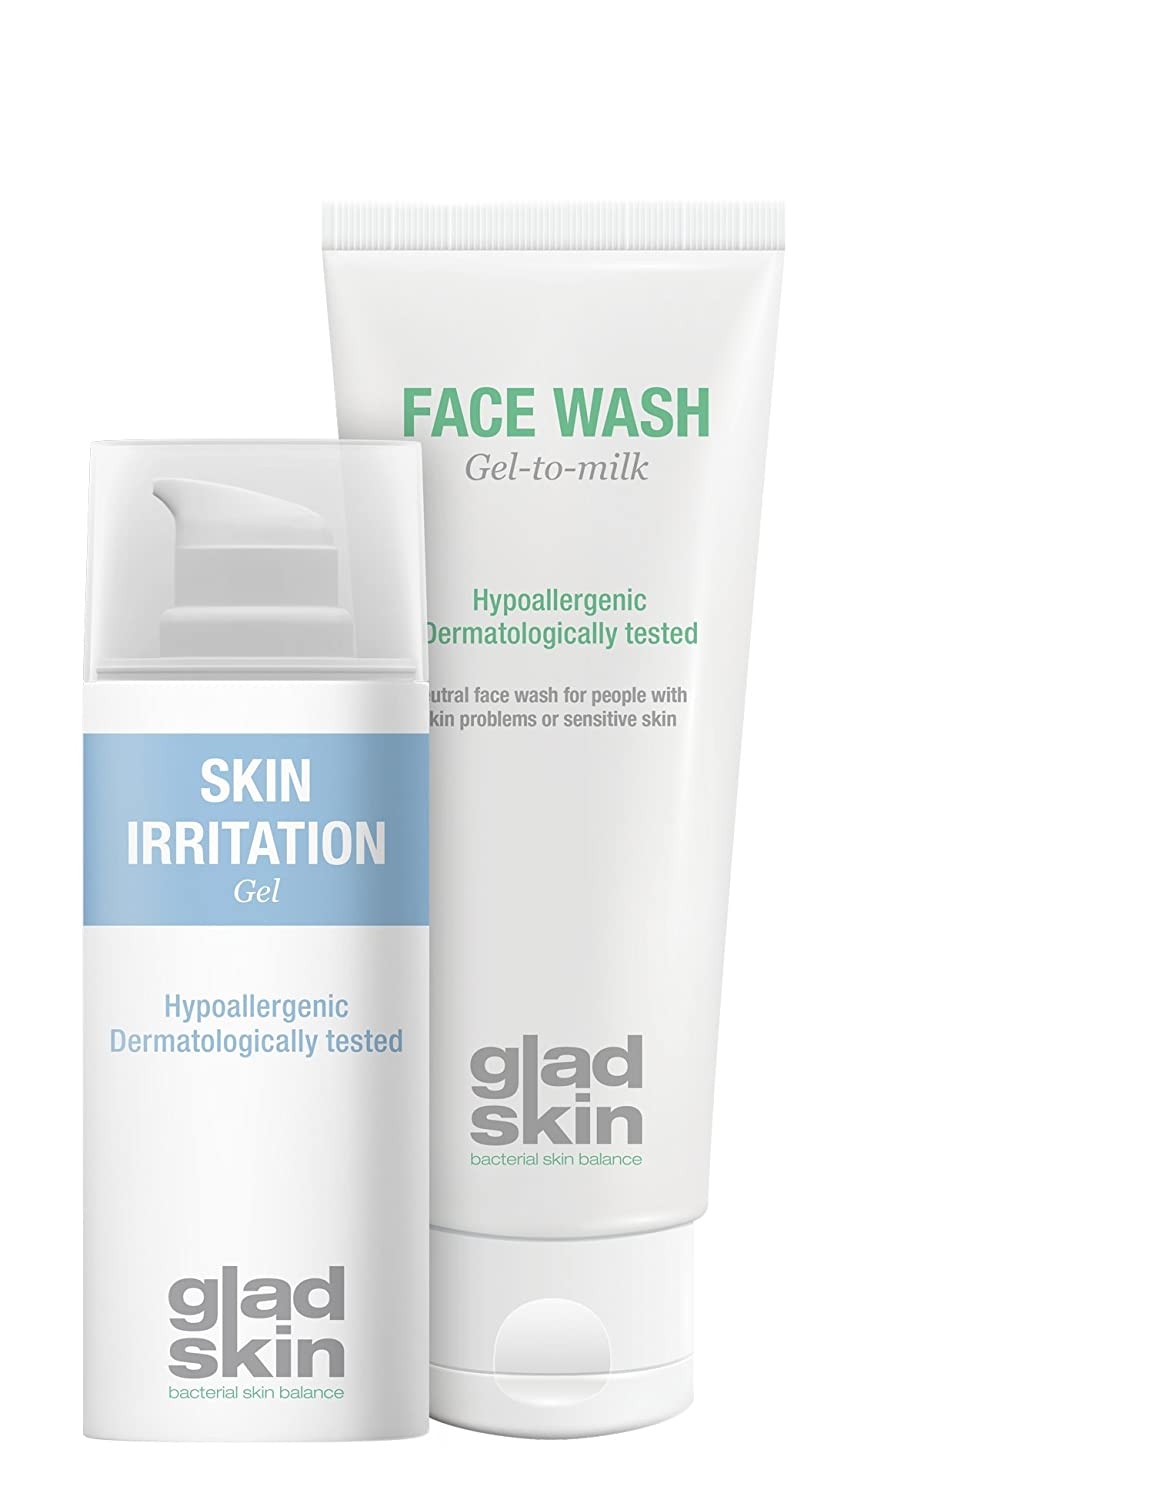 Gladskin Skin Irritation Gel 30ml & Face Wash 75ml Cleansing Set (combination pack) -alleviates skin irritation and prevents pimples and redness Micreos Human Health